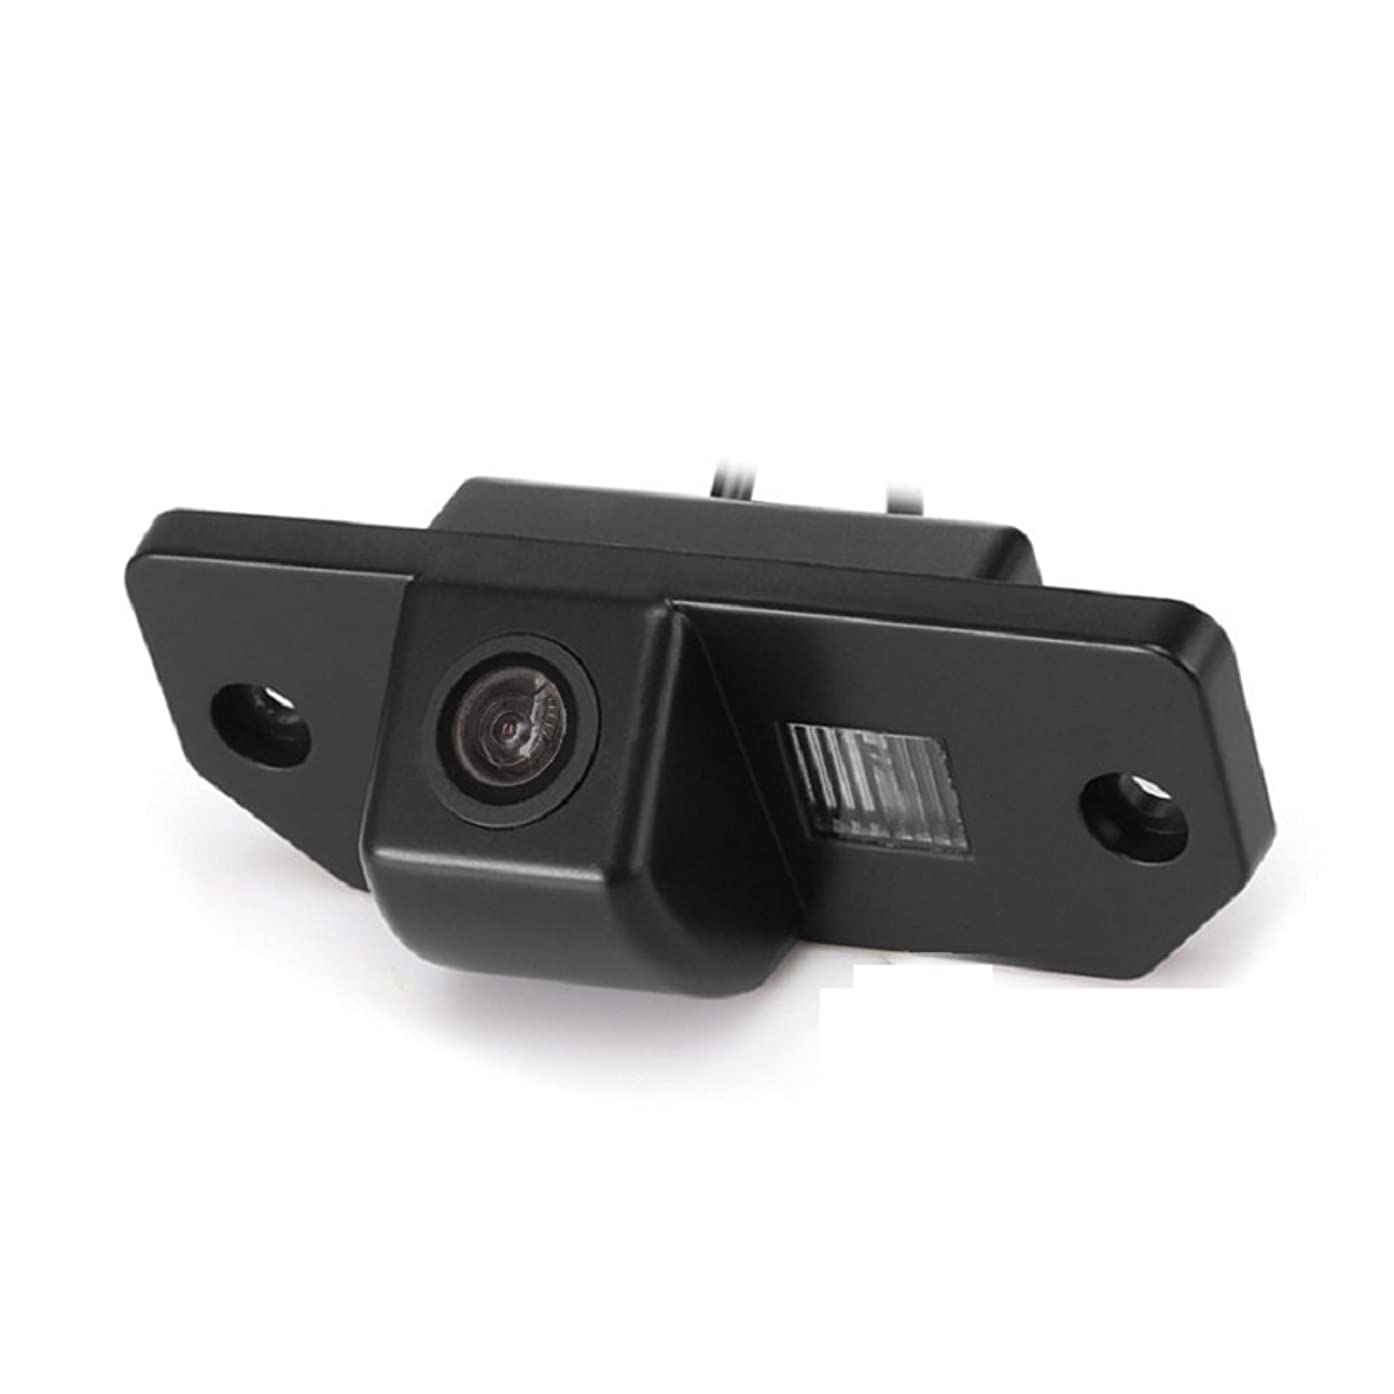 Reversing Vehicle-Specific Camera Integrated in Number Plate Light License Rear View Backup camera for Focus 3 (3C) sedan Mondeo (2000-2007) C-Max (2007-2009)